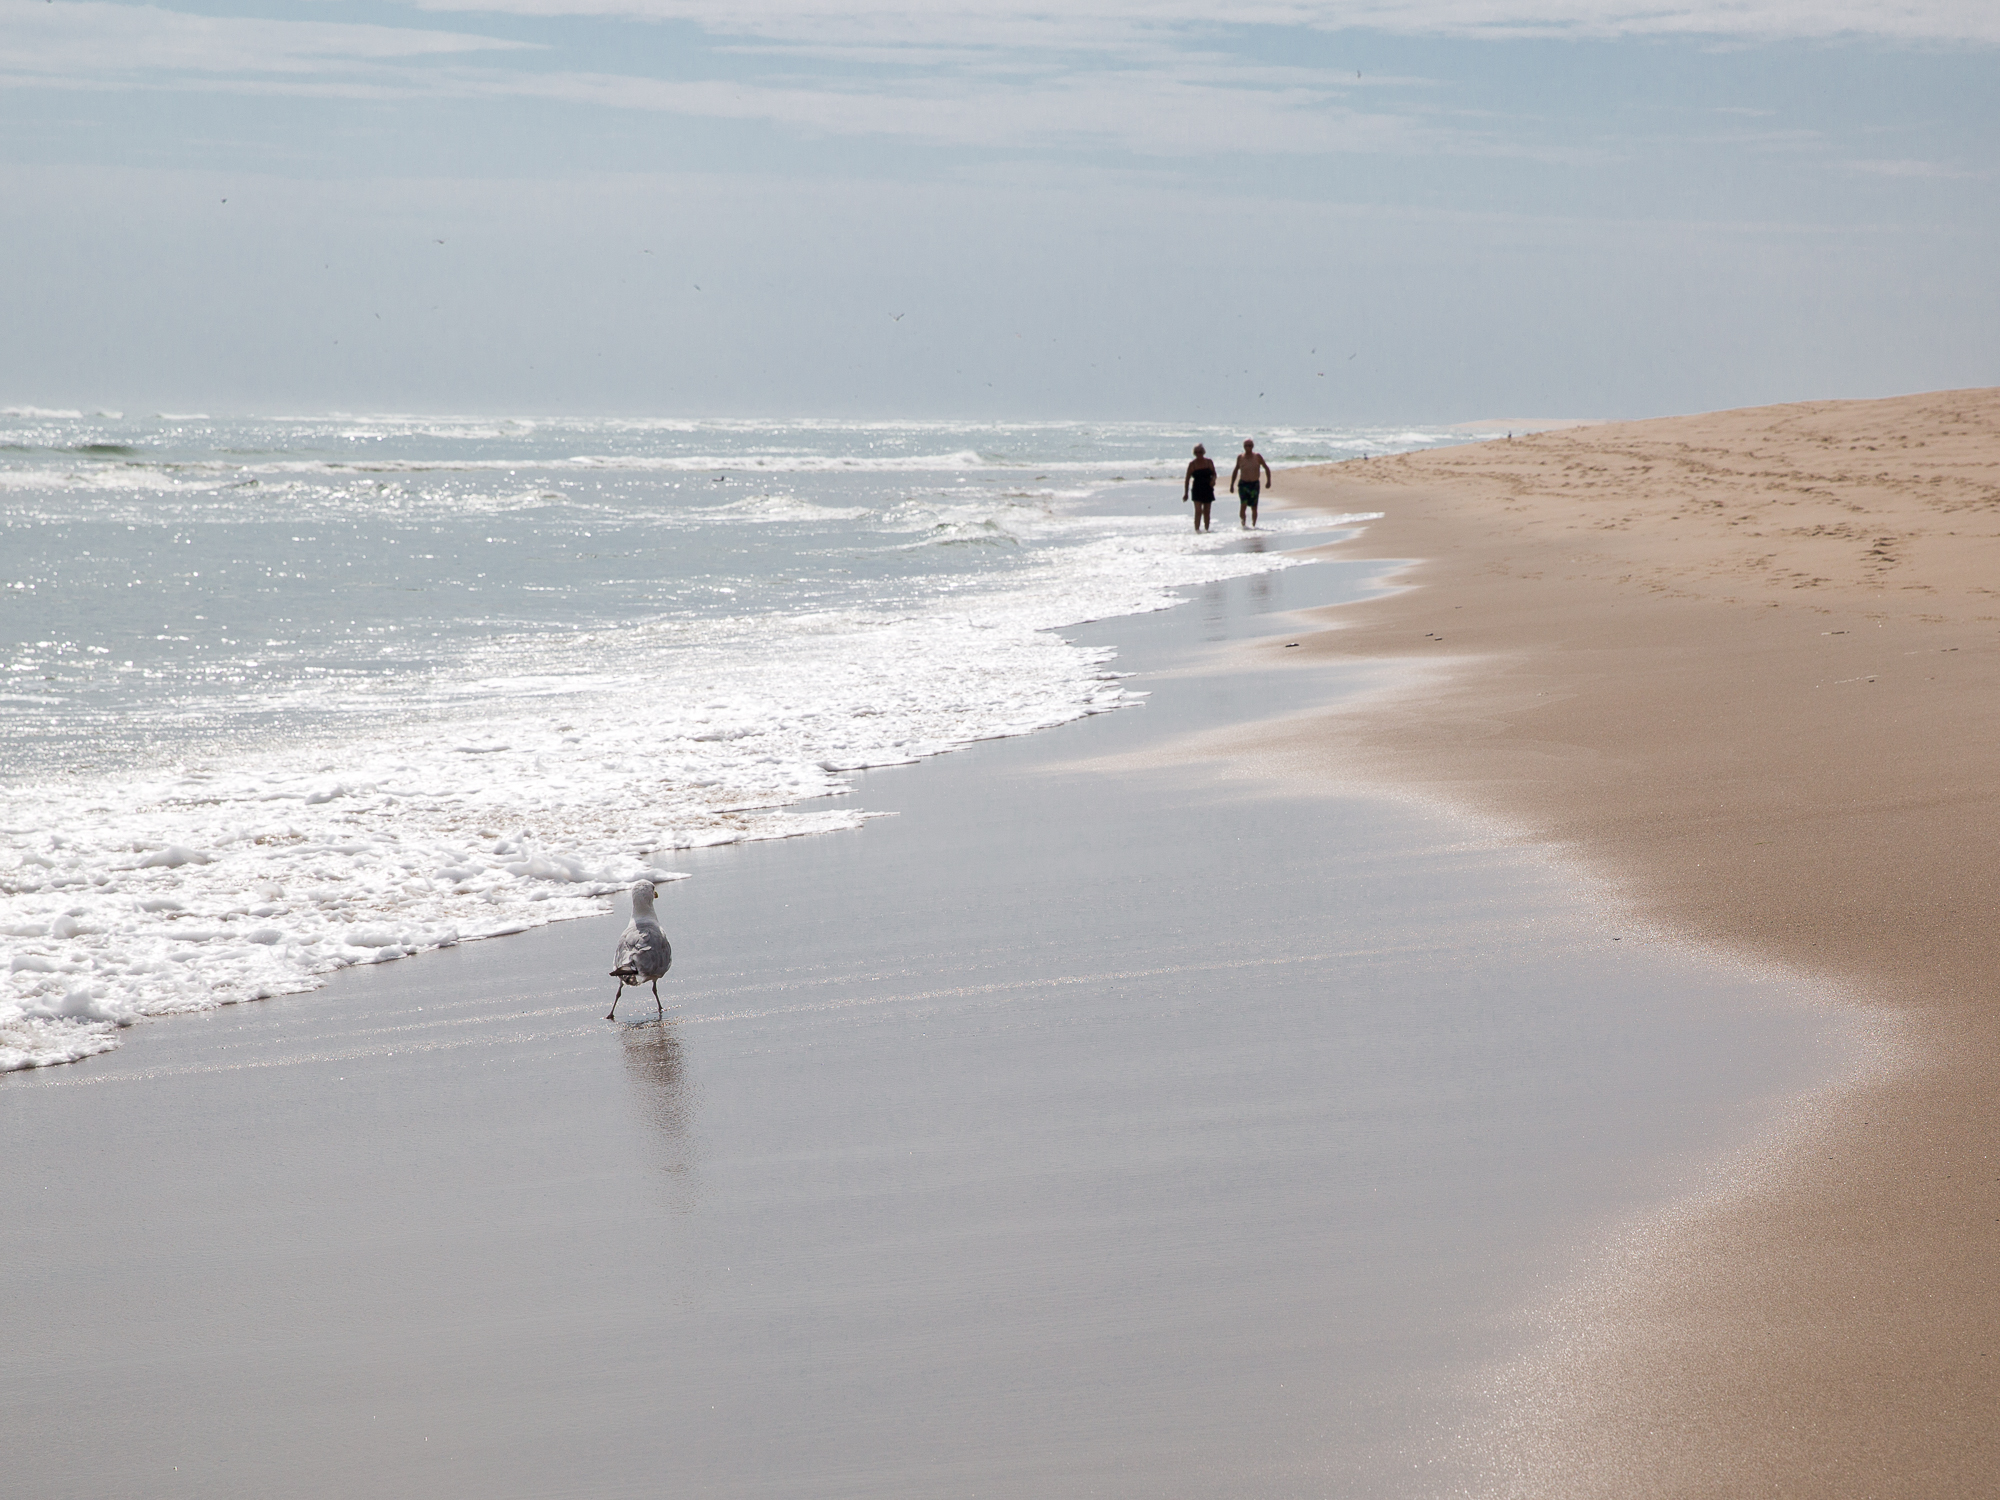 A couple stroll along Cape Cod's sands, waves breaking onto the shore